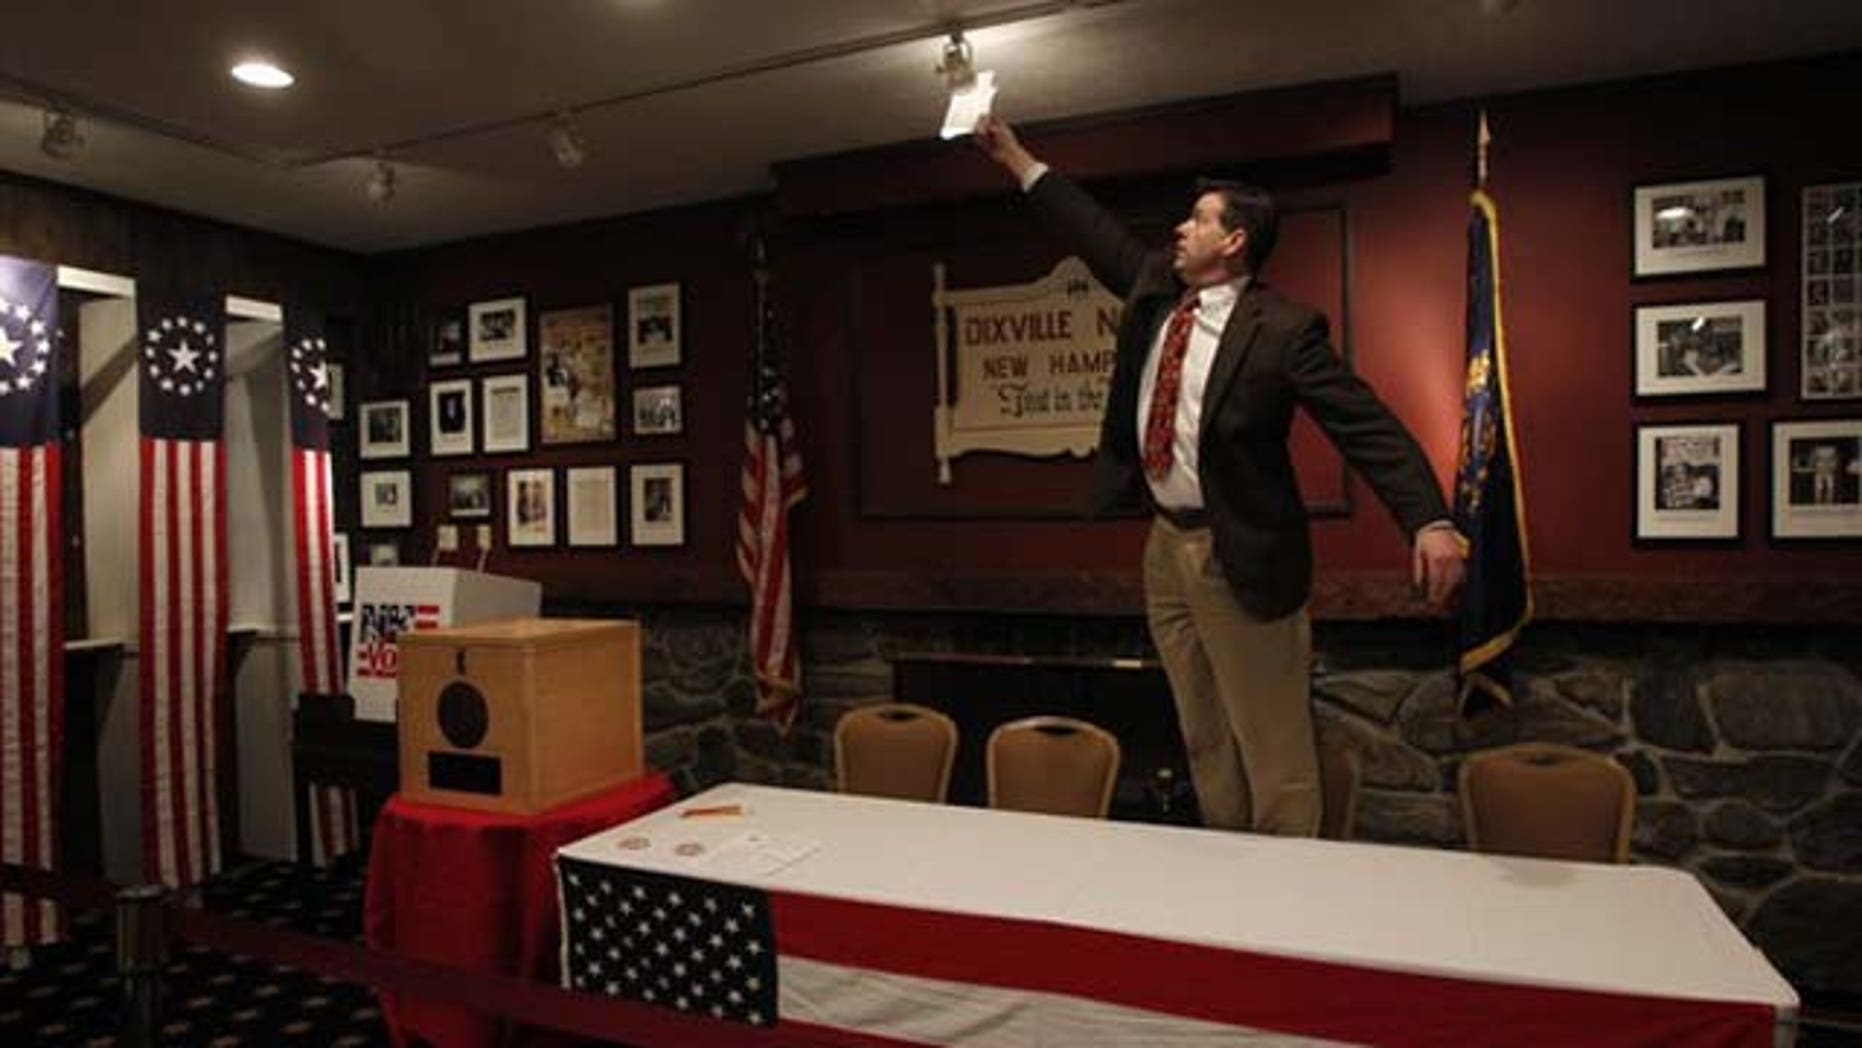 """January 10, 2012: Scott Trachemontagne adjusts a light in the """"Ballot Room"""" of the Balsams Hotel in Dixville Notch, New Hampshire."""